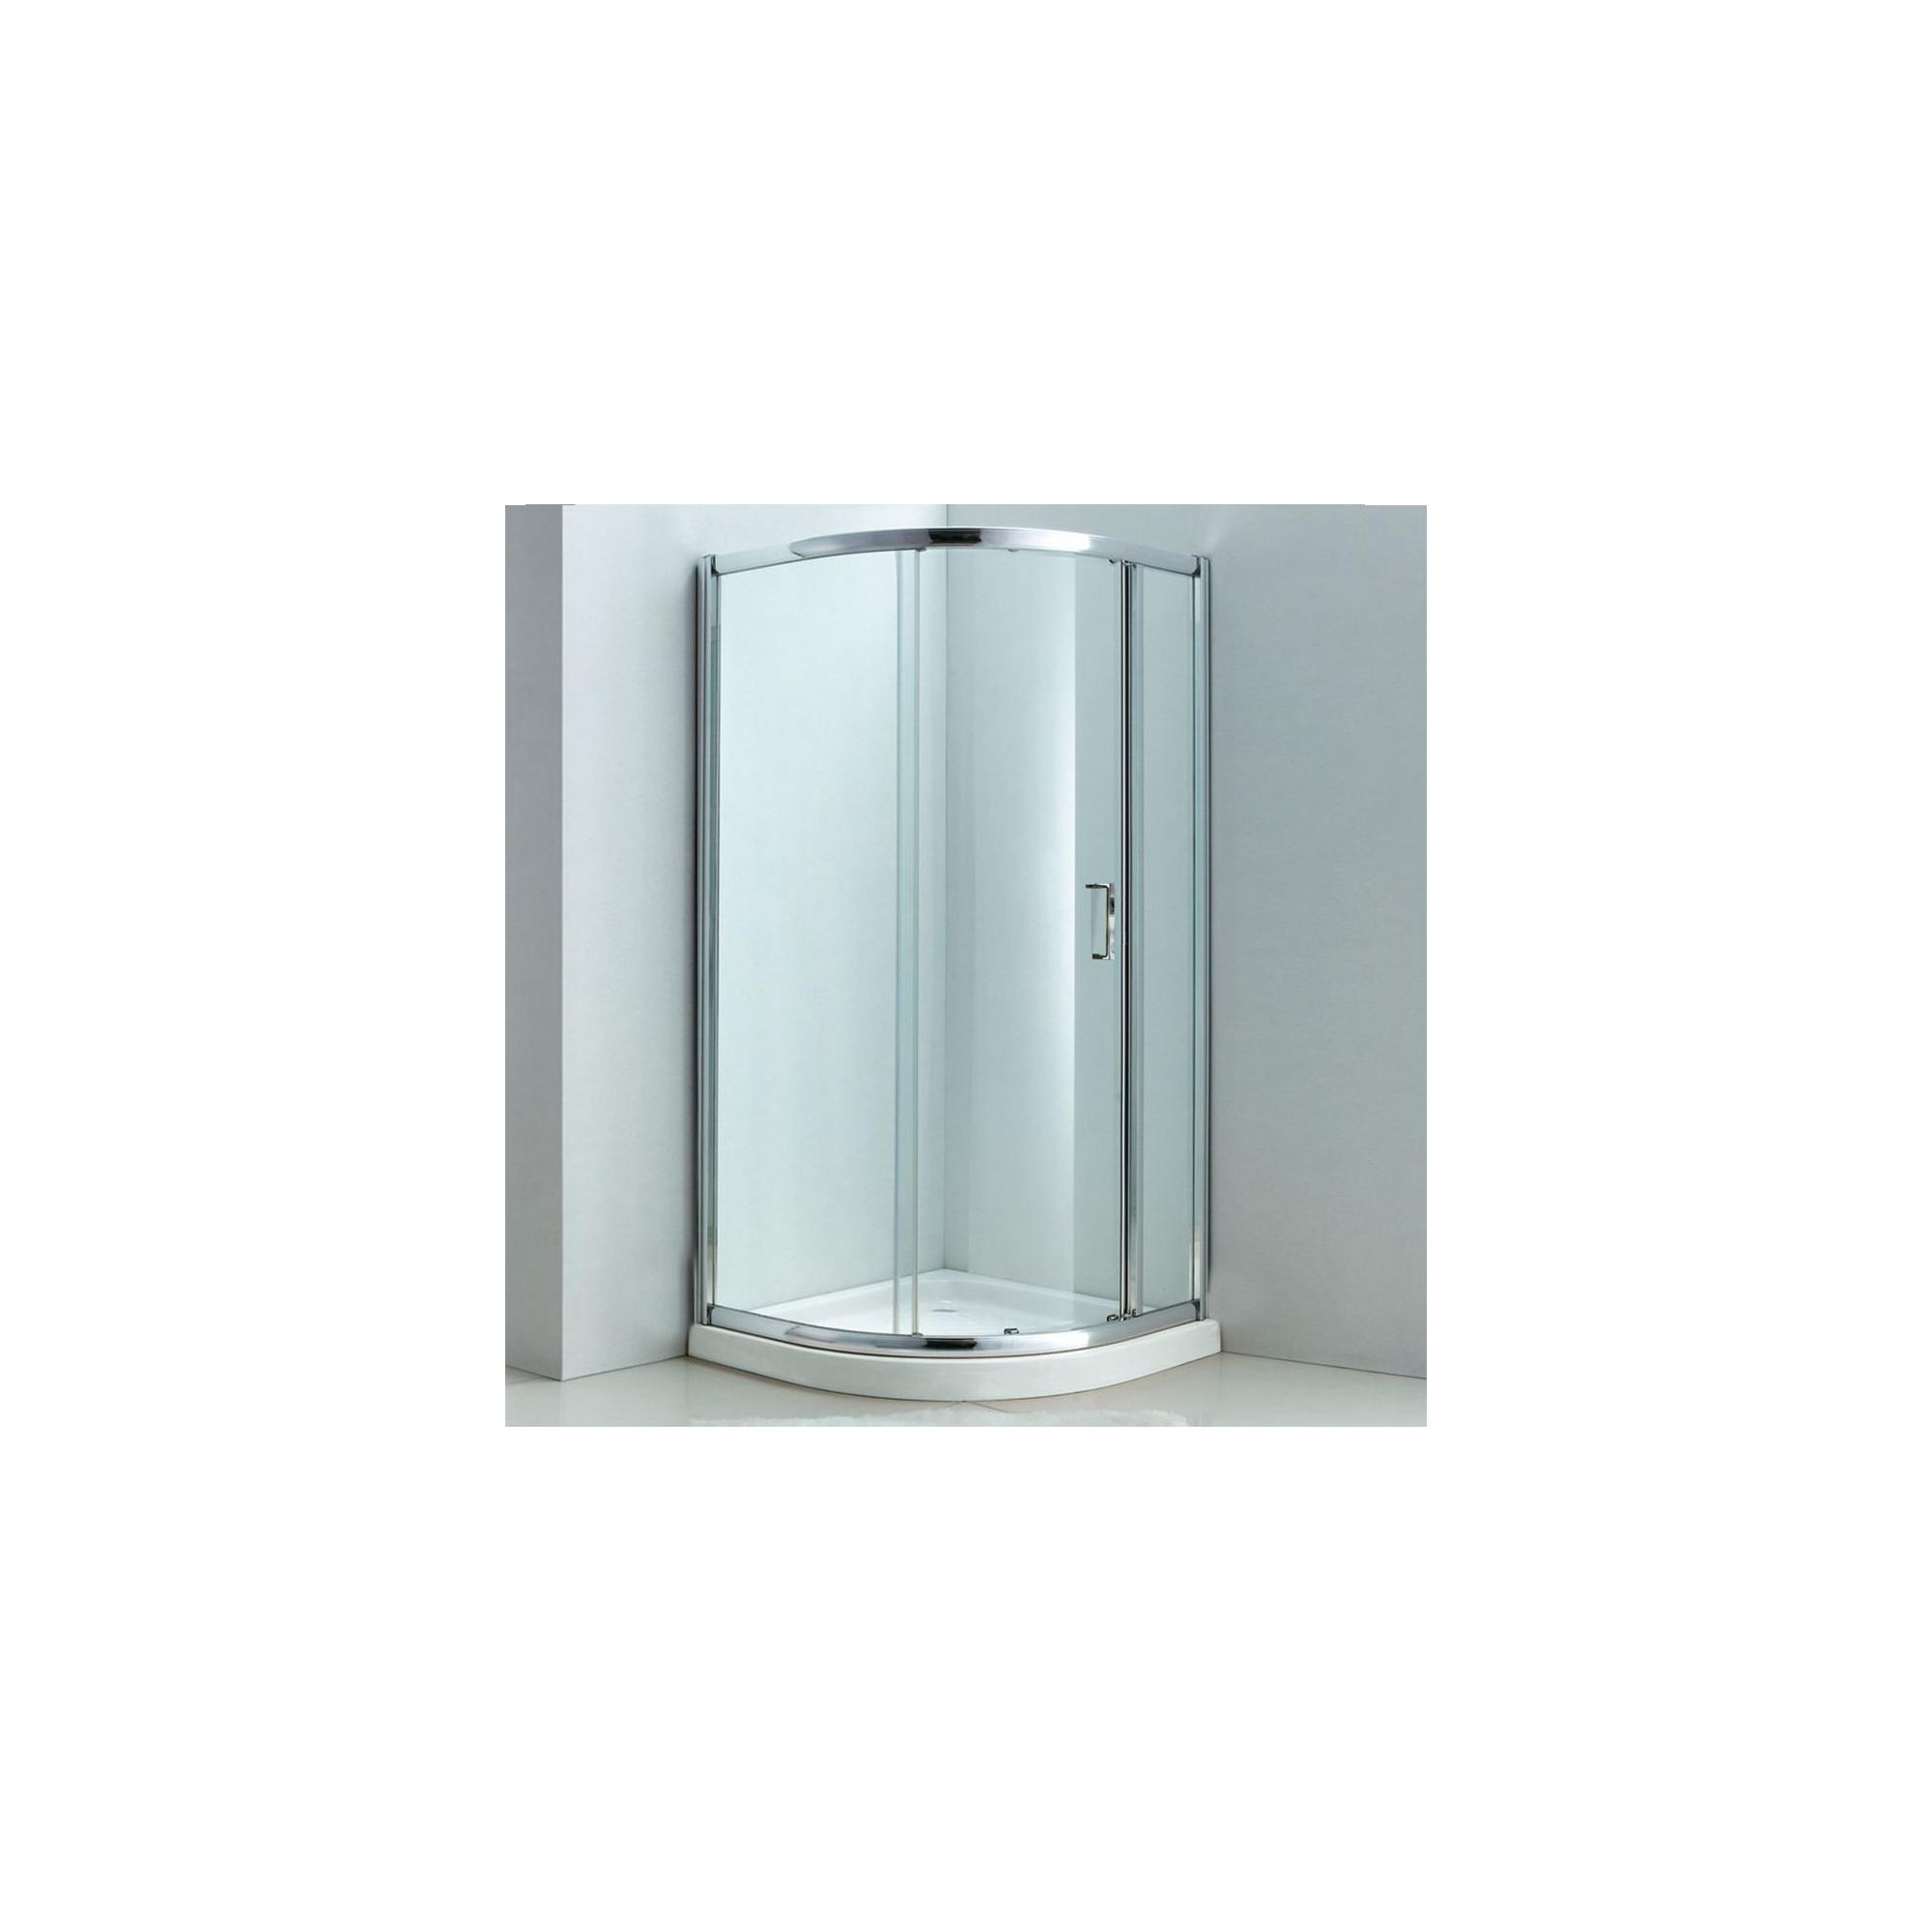 Duchy Style Single Quadrant Shower Door, 800mm x 800mm, 6mm Glass at Tesco Direct